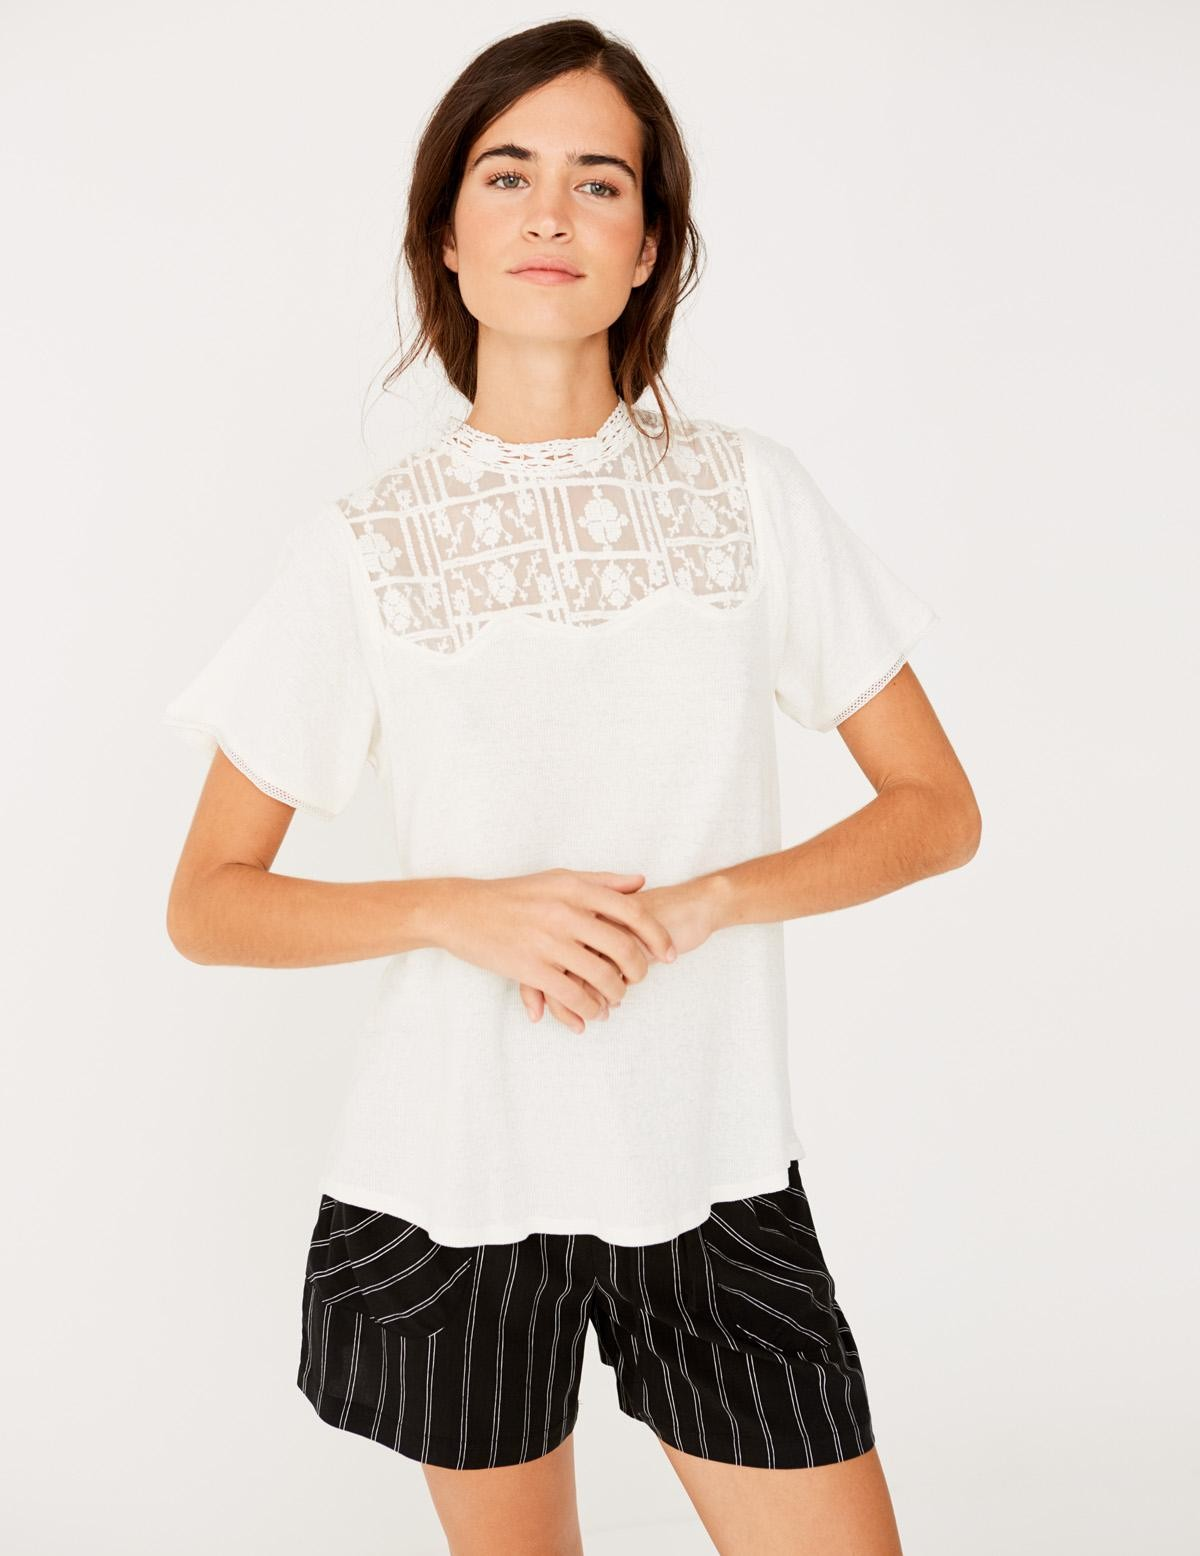 A-line t-shirt with lace edging